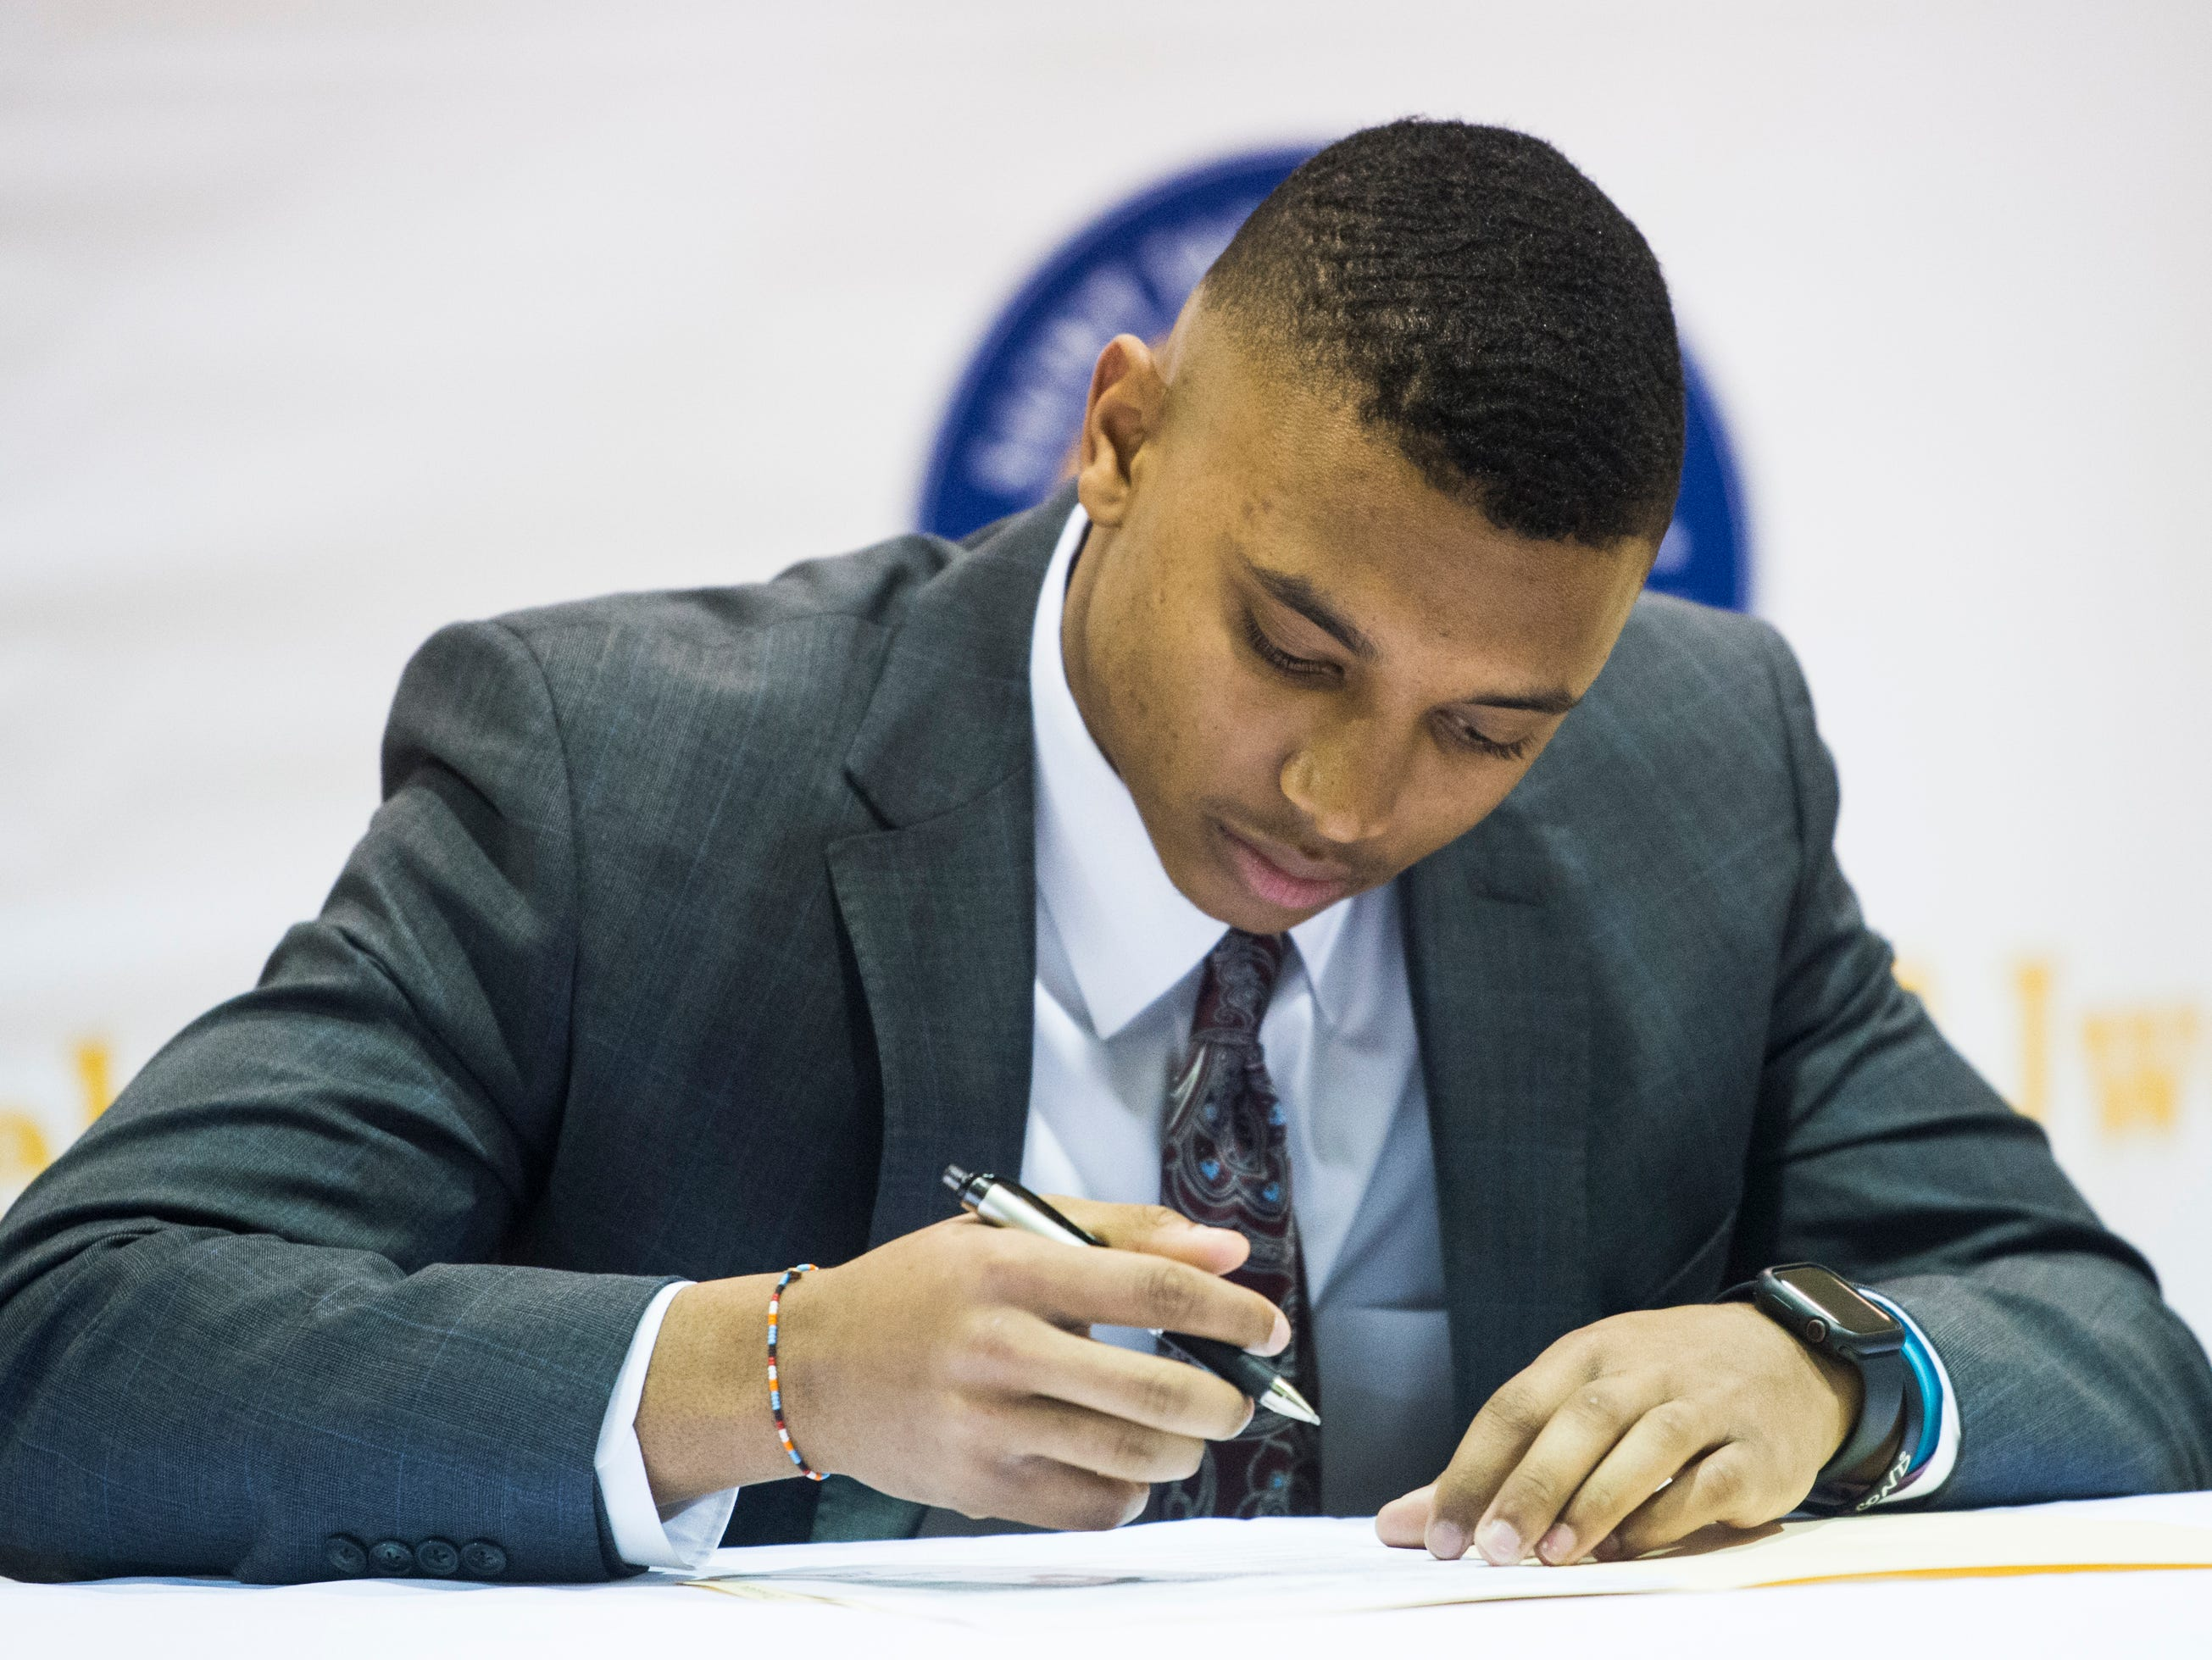 Collin Duncan signs his letter of intent to Mississippi State during signing day at St. James High School in Montgomery, Ala., on Wednesday, Feb. 6, 2019.